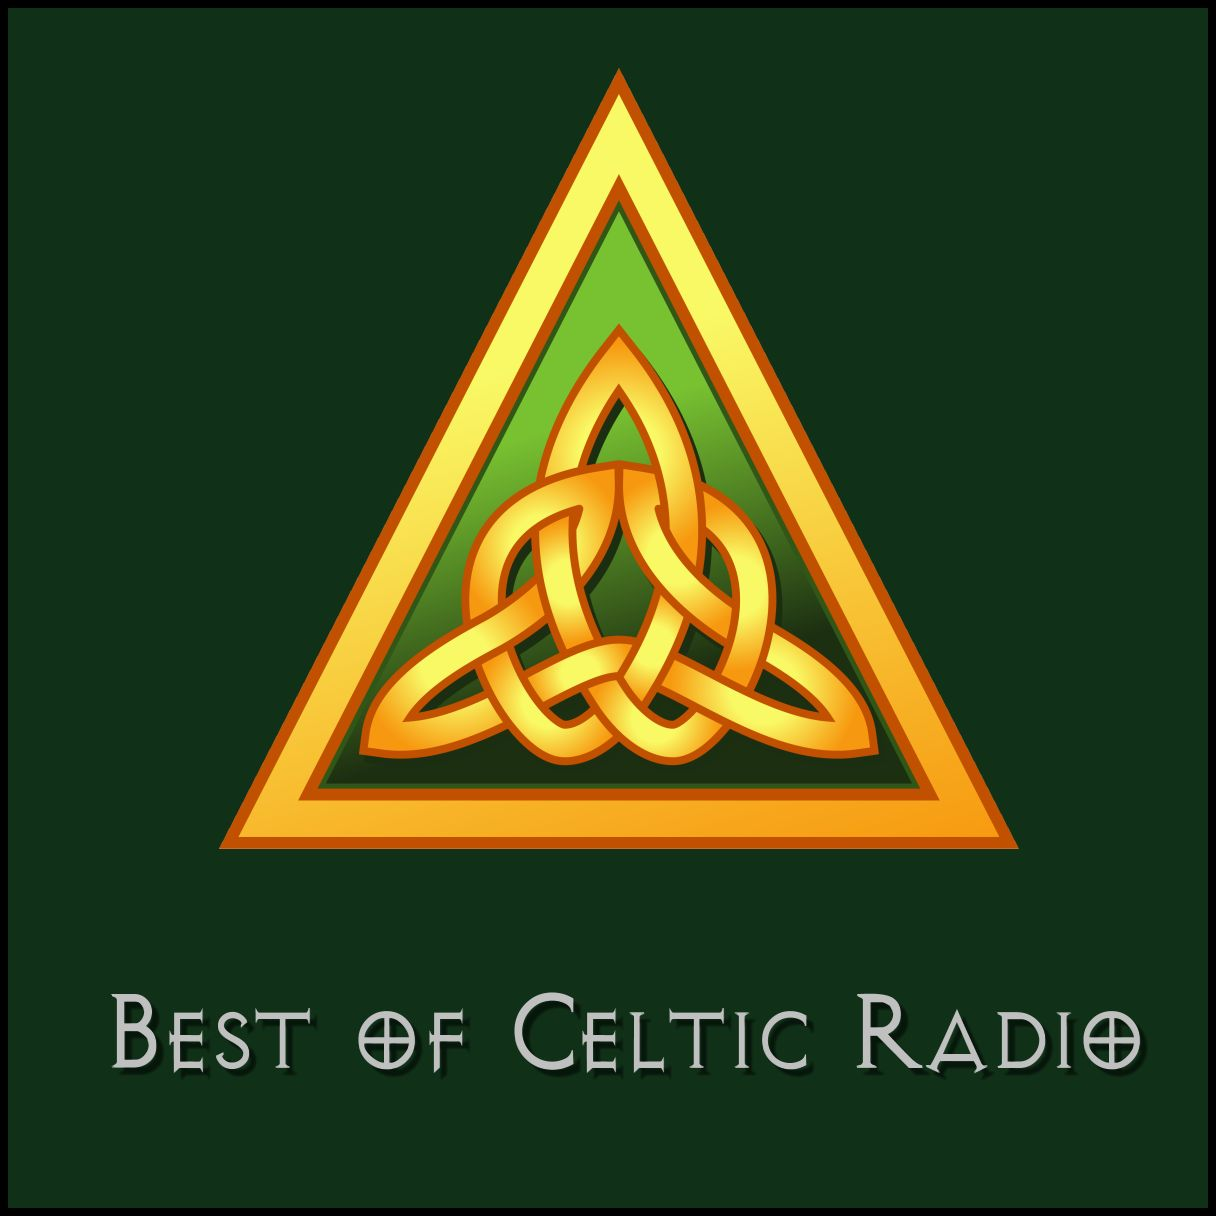 Best of Celtic Radio